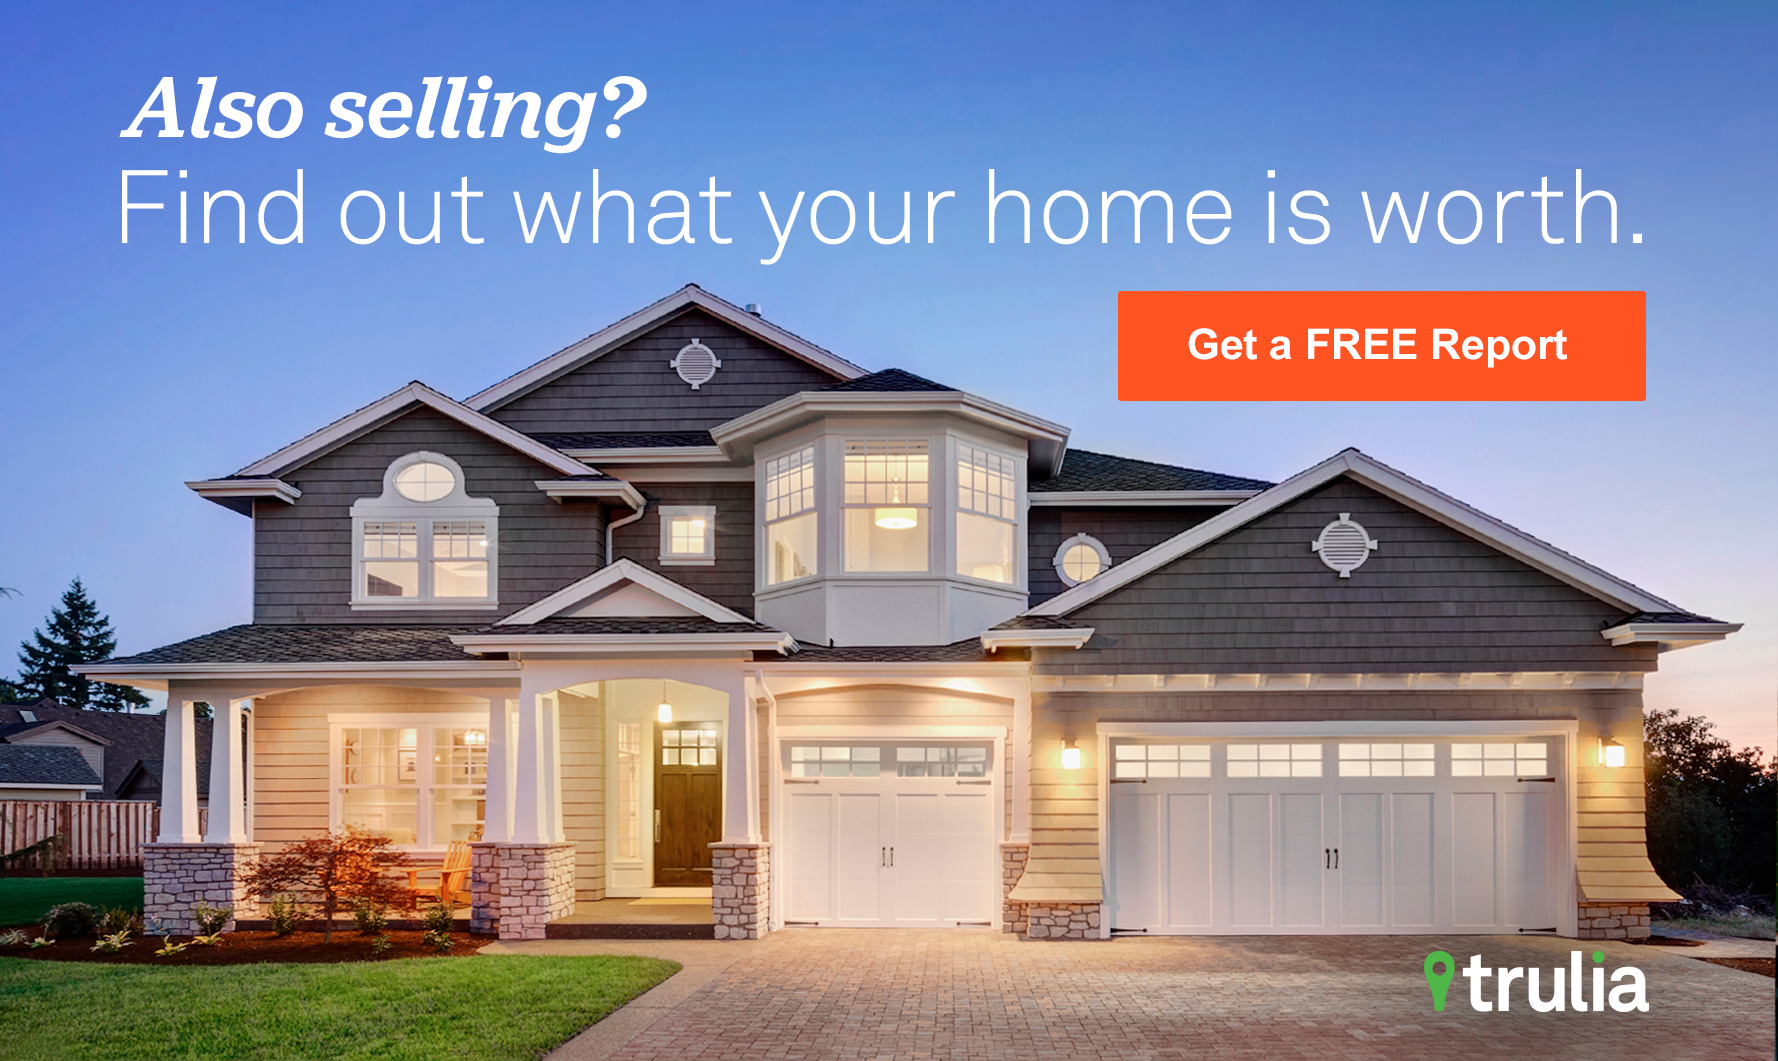 Find out what your home is worth